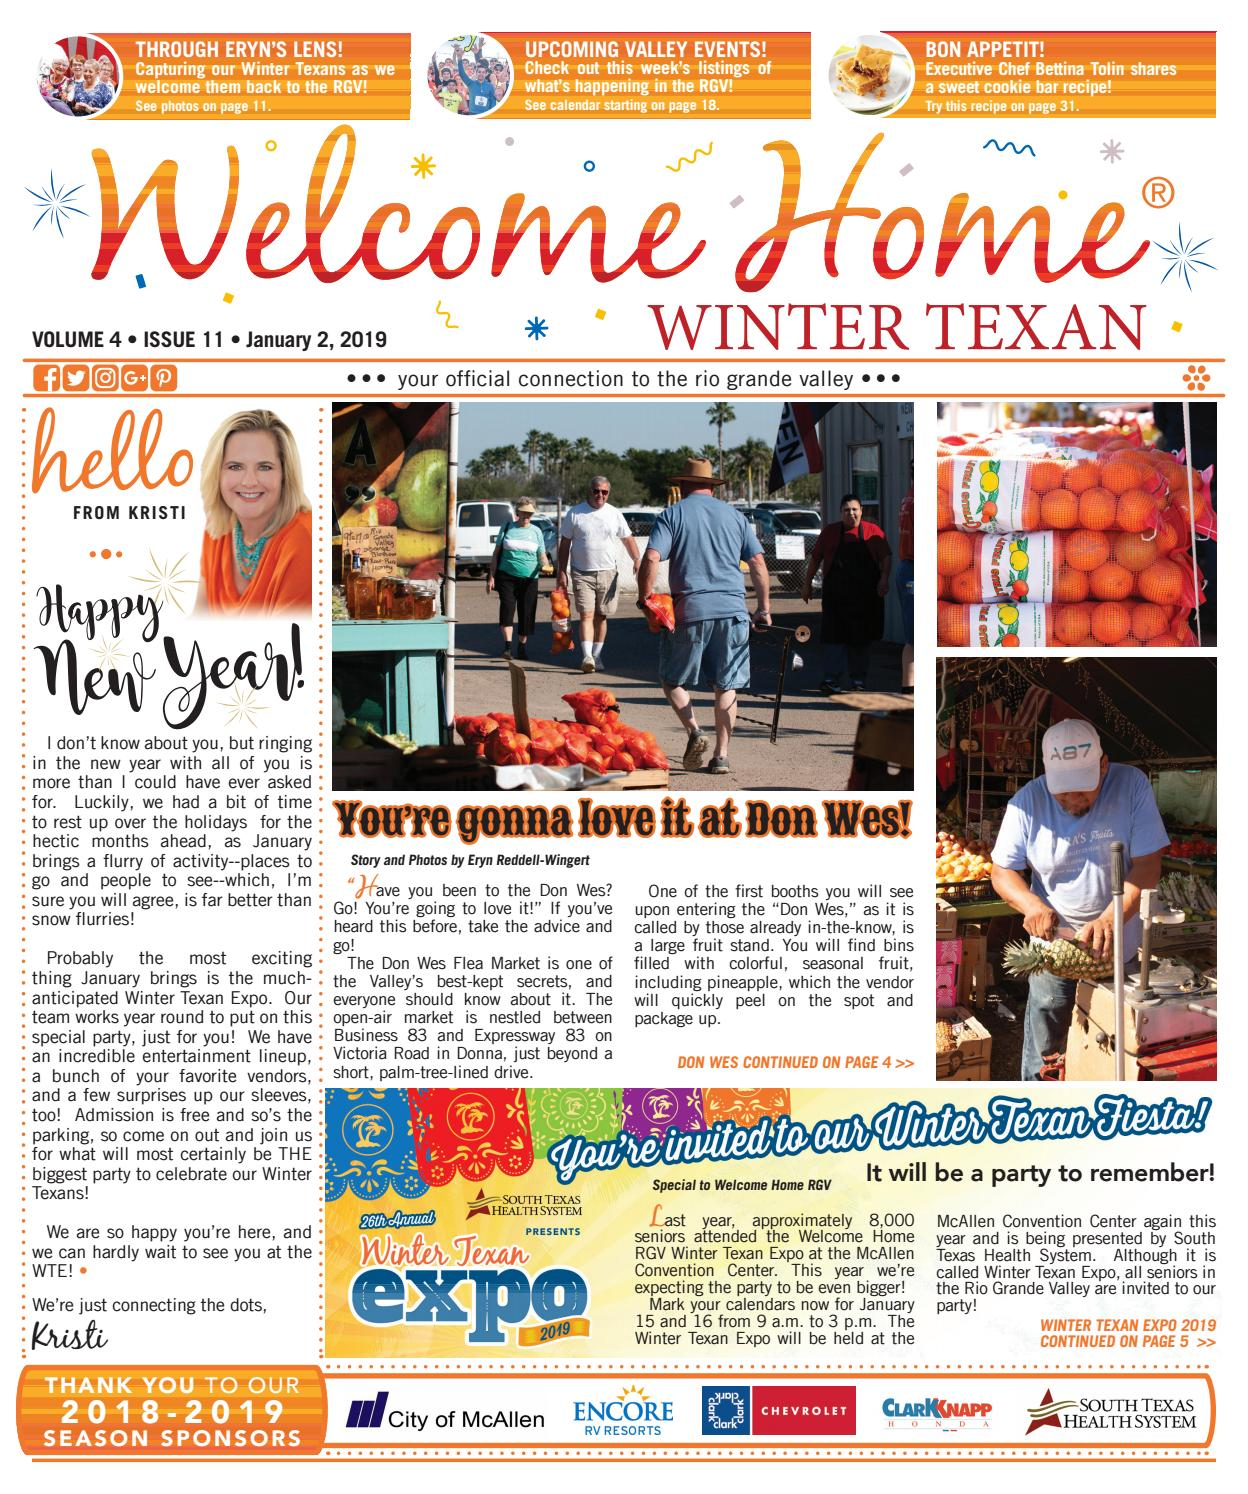 Welcome Home Winter Texan : Vol 4 Issue 11 : January 2, 2019